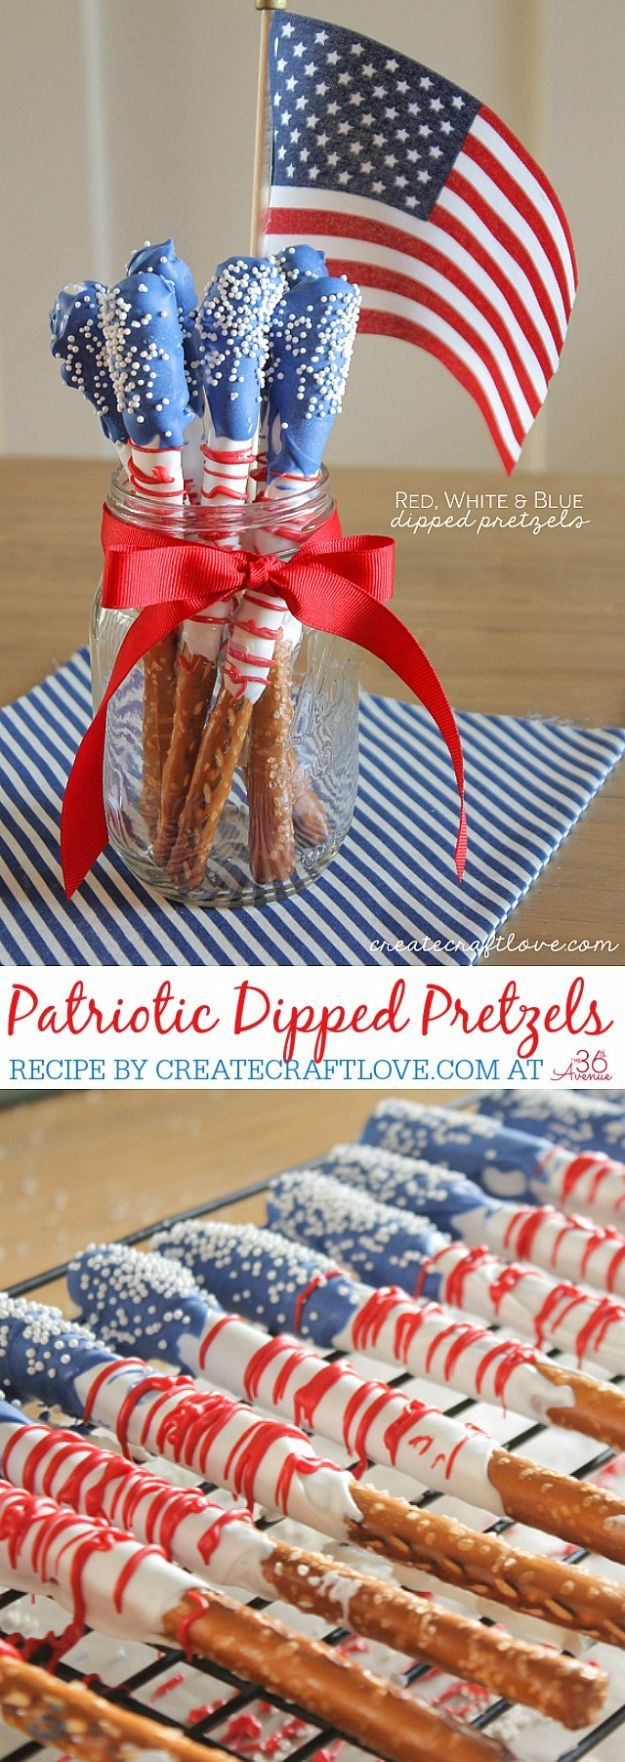 Best 20 holiday ideas ideas on pinterest for 4th of july celebration ideas